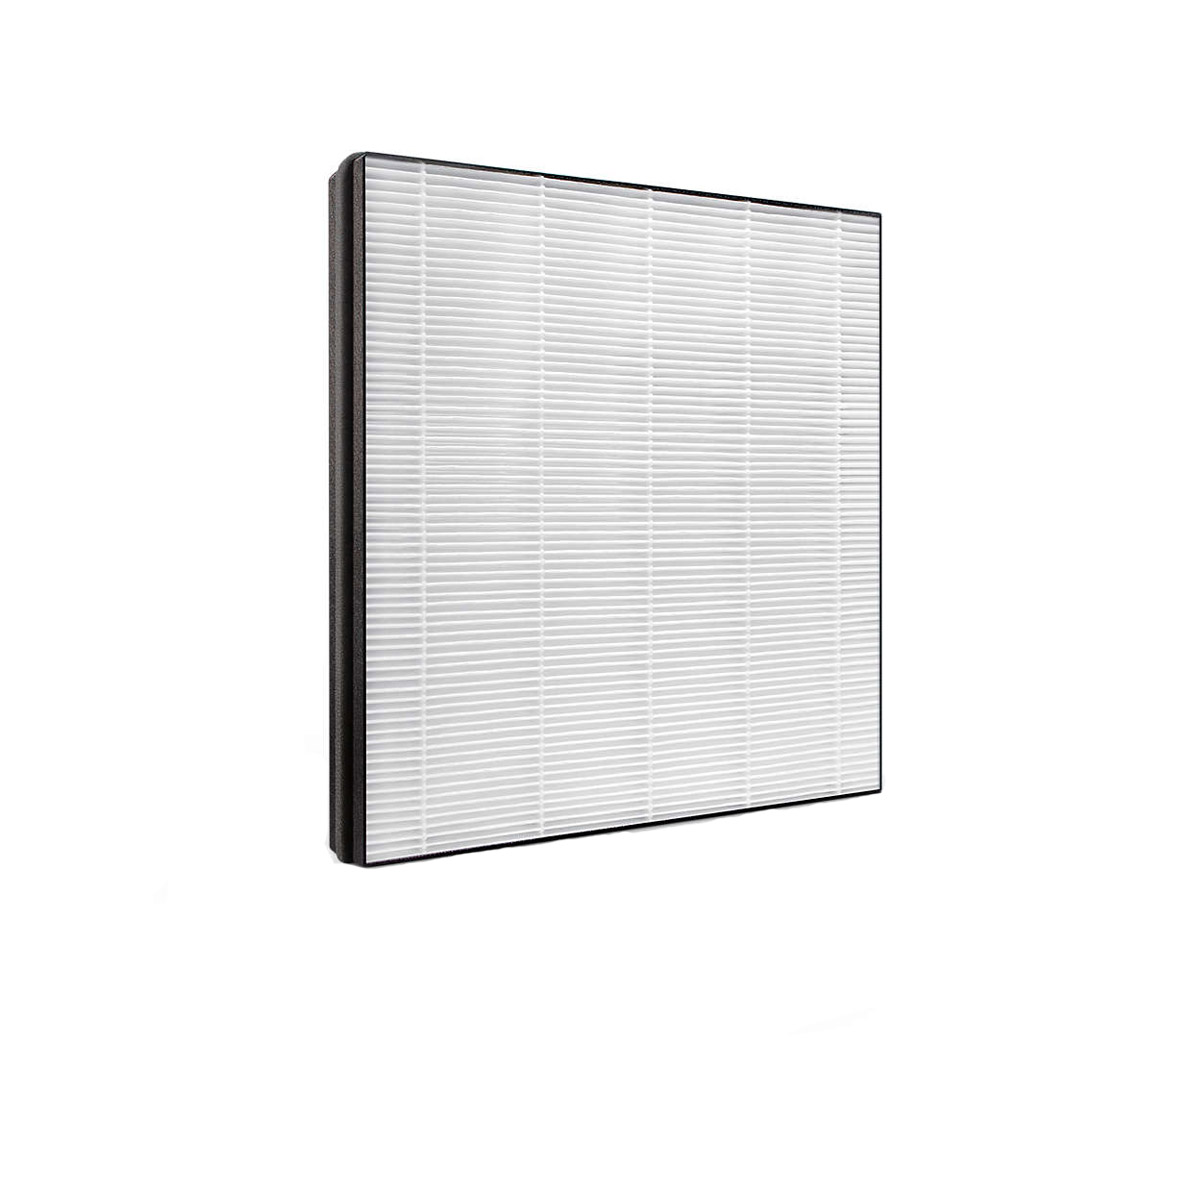 Philips NanoProtect HEPA Series 5000 Replacement Filter